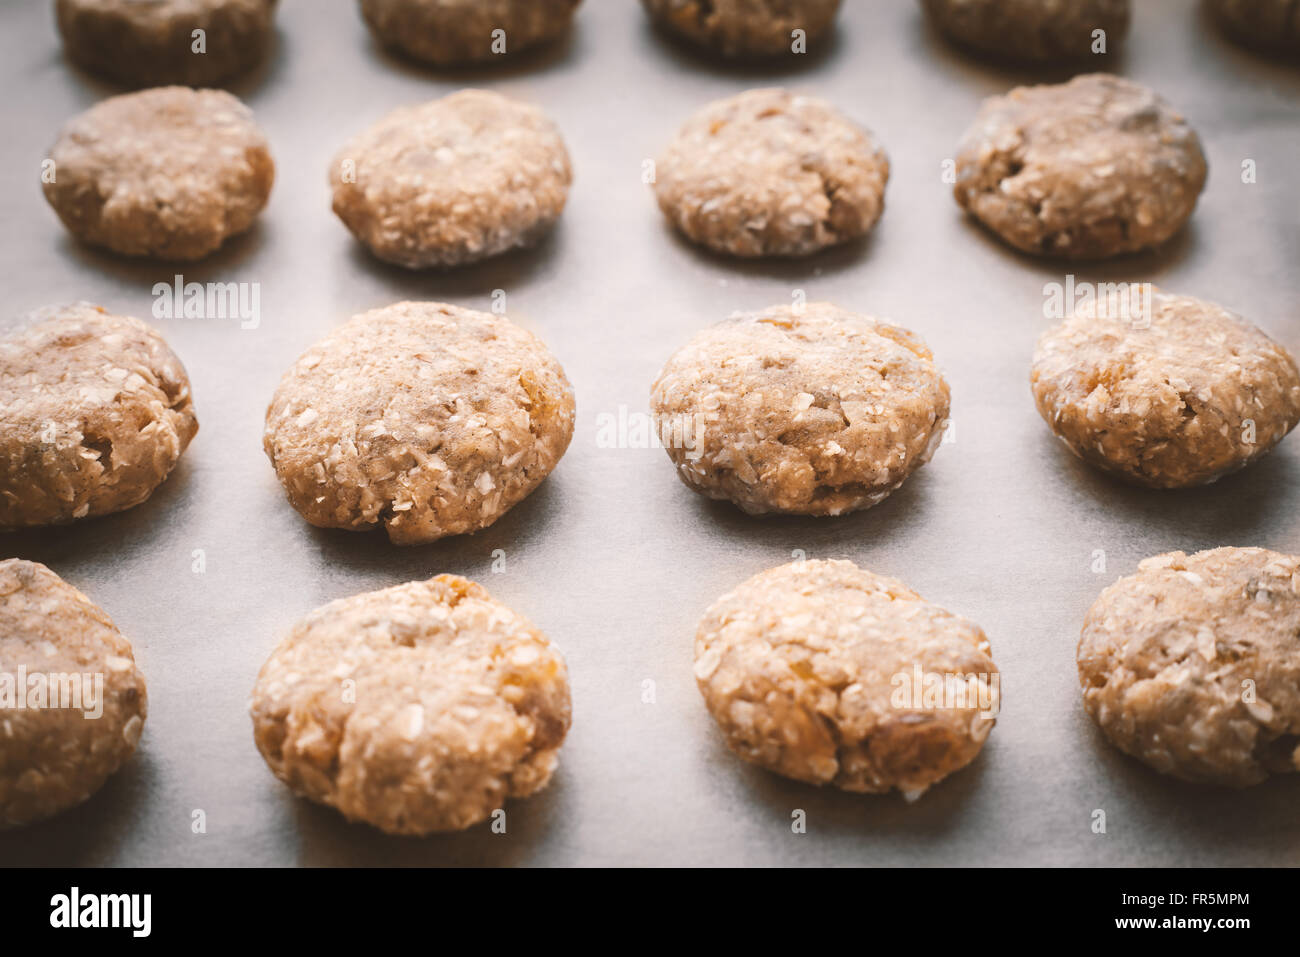 Oatmeal cookies on a baking sheet covered with parchment horizontal - Stock Image